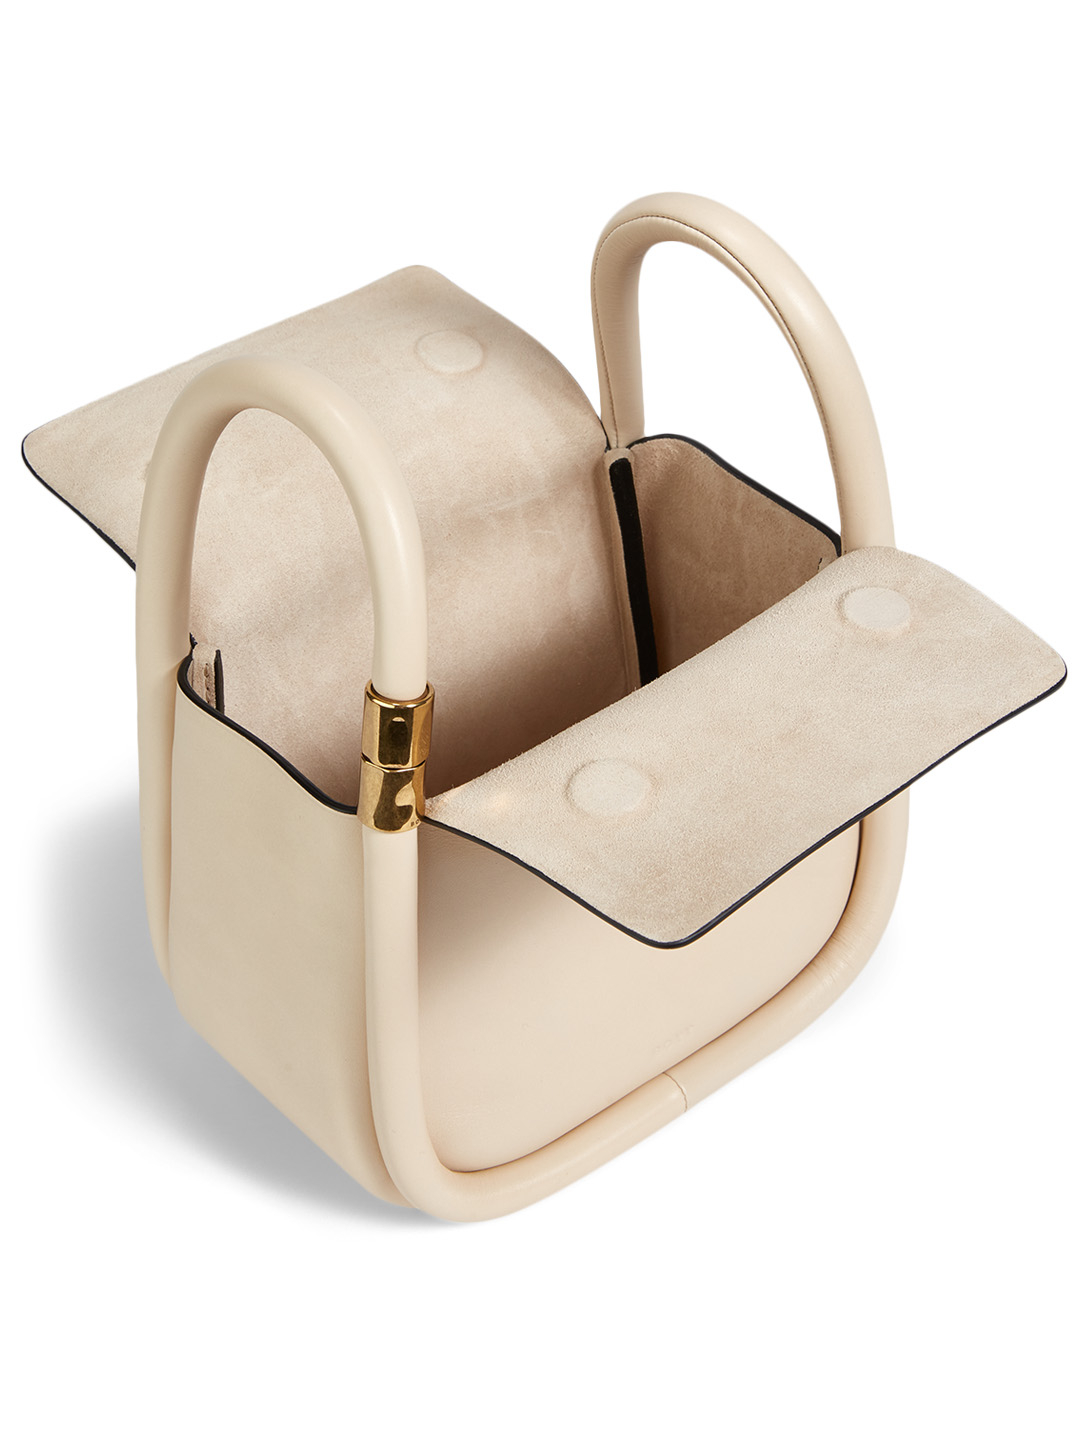 BOYY Wonton 20 Leather Bag Women's White